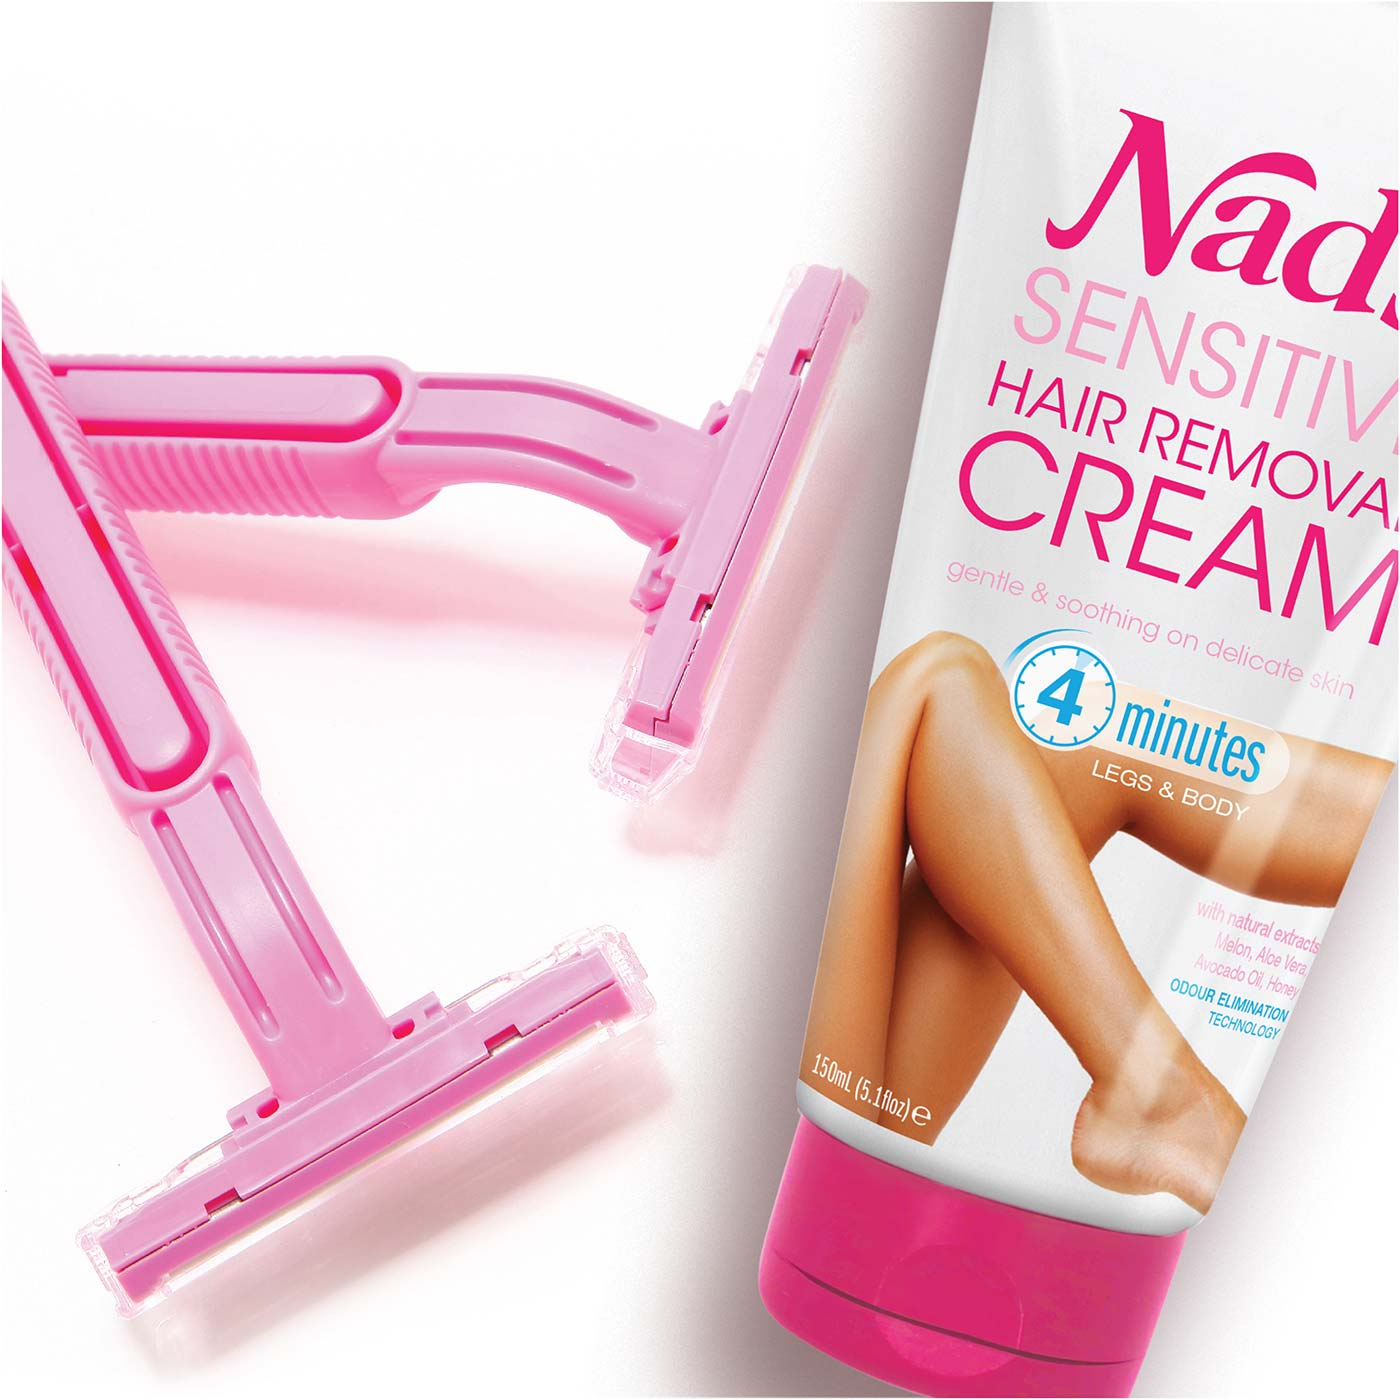 Hair Removal Wars: Depilatory Cream vs Shaving | Nad's Sensitive Hair Removal Cream